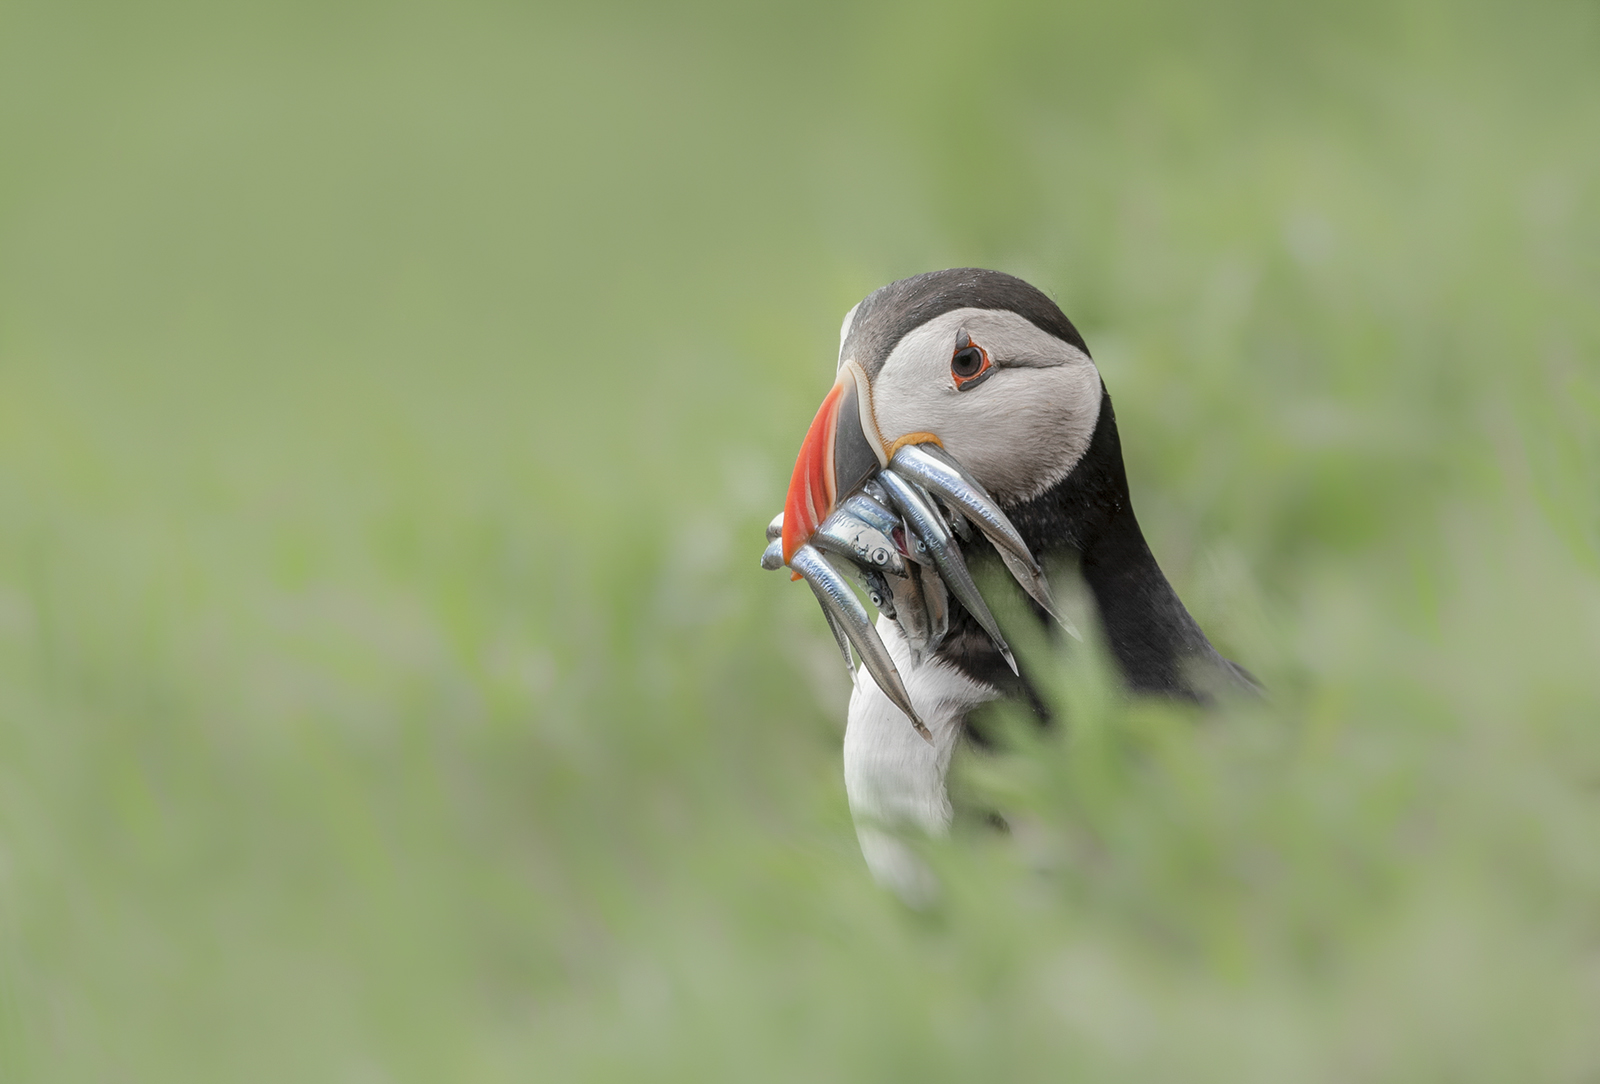 <h5>Puffin with sand eeels</h5><p>By Claire Norman																	</p>